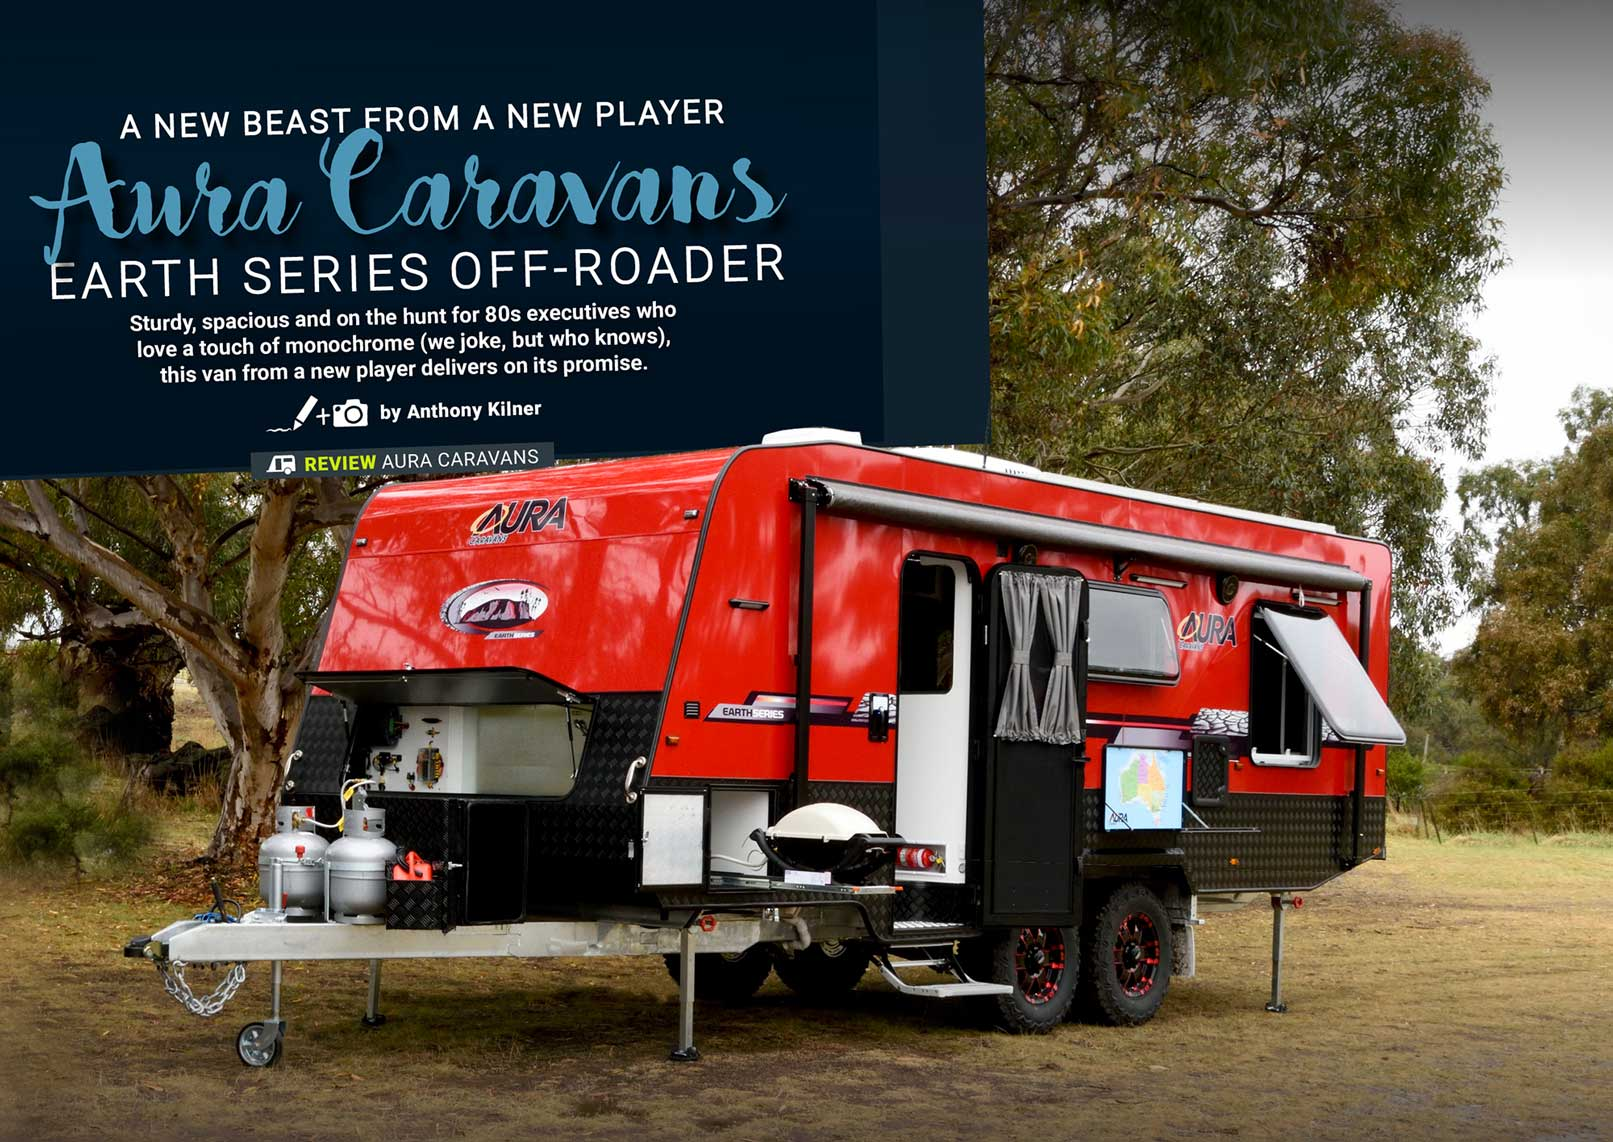 Aura Caravans Earth Series Off-Roader